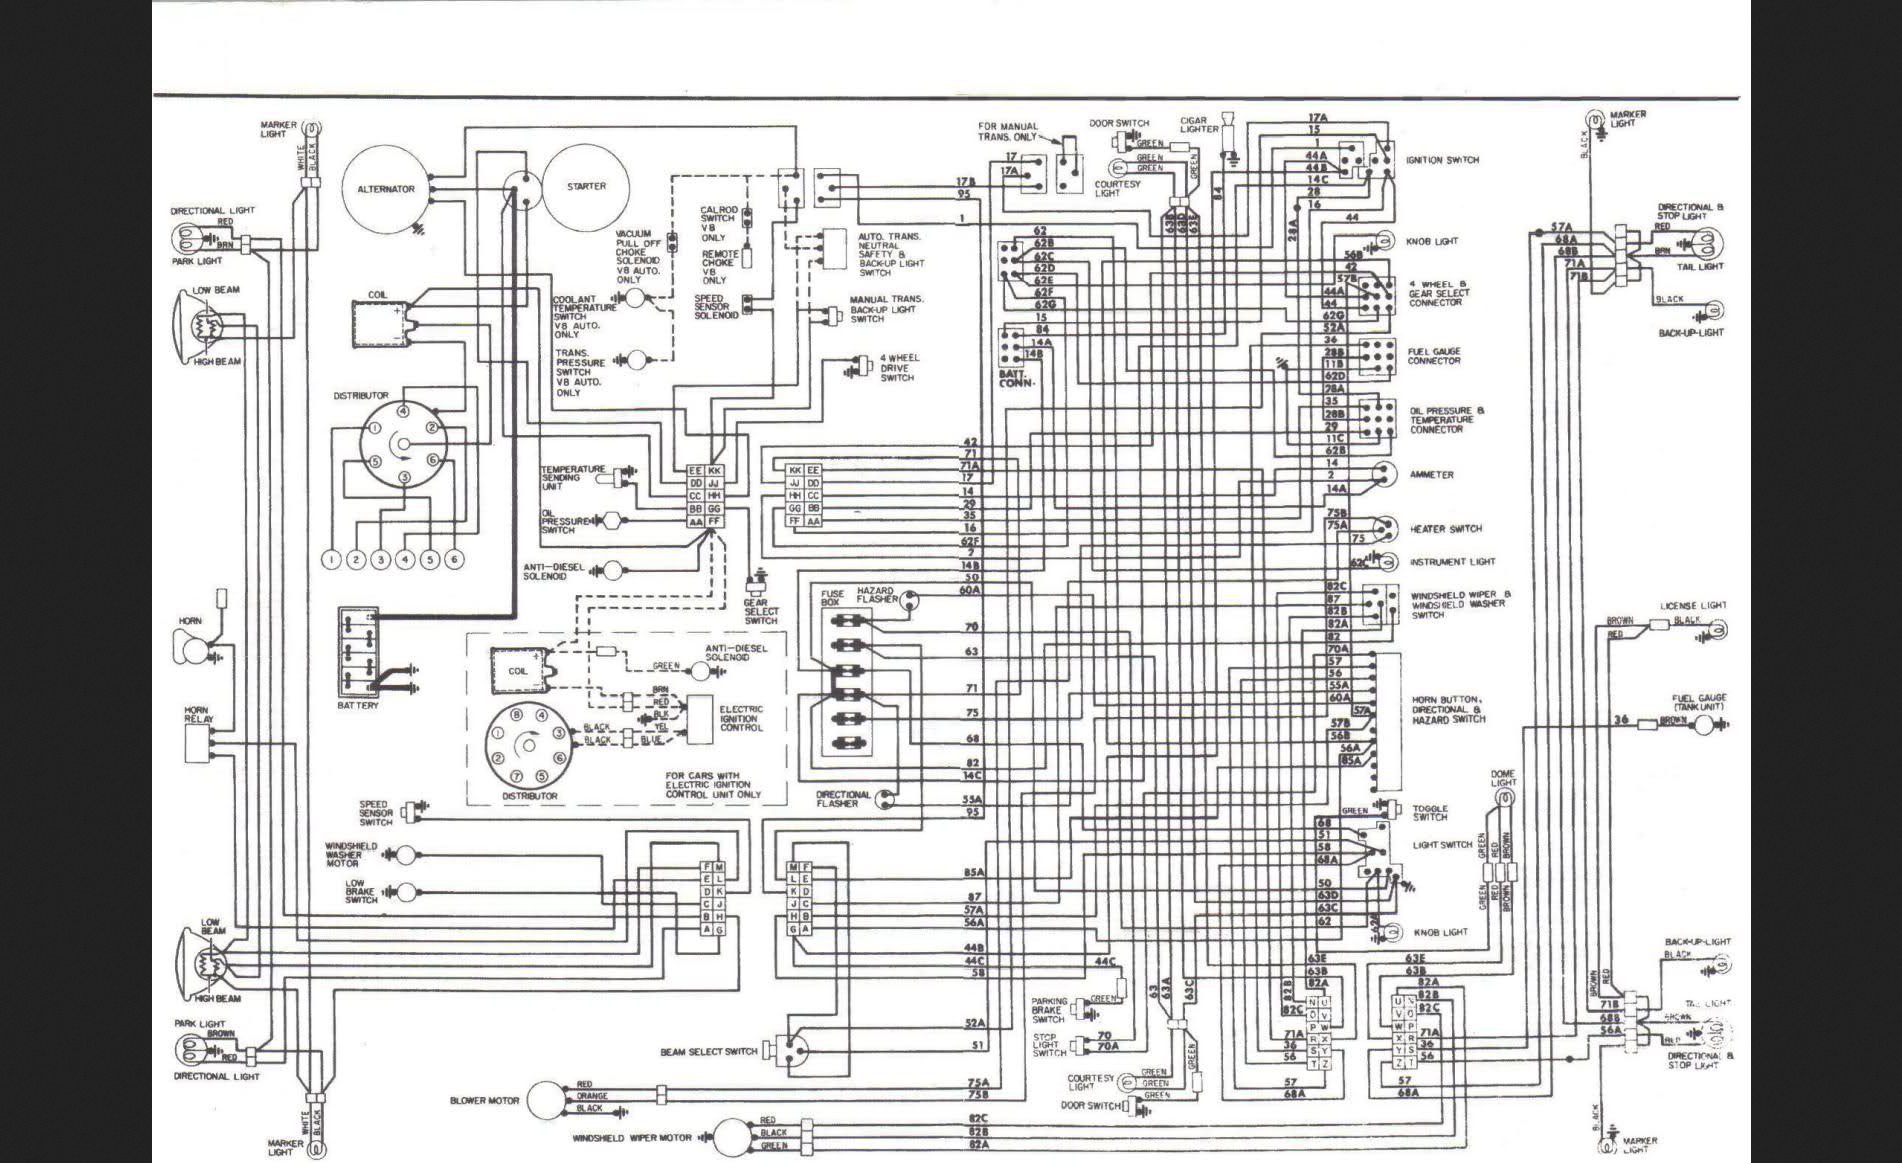 79 international scout wiring diagram i've got a 79 scout ii with a 345 and it died on me the ... 1970 international scout wiring diagram